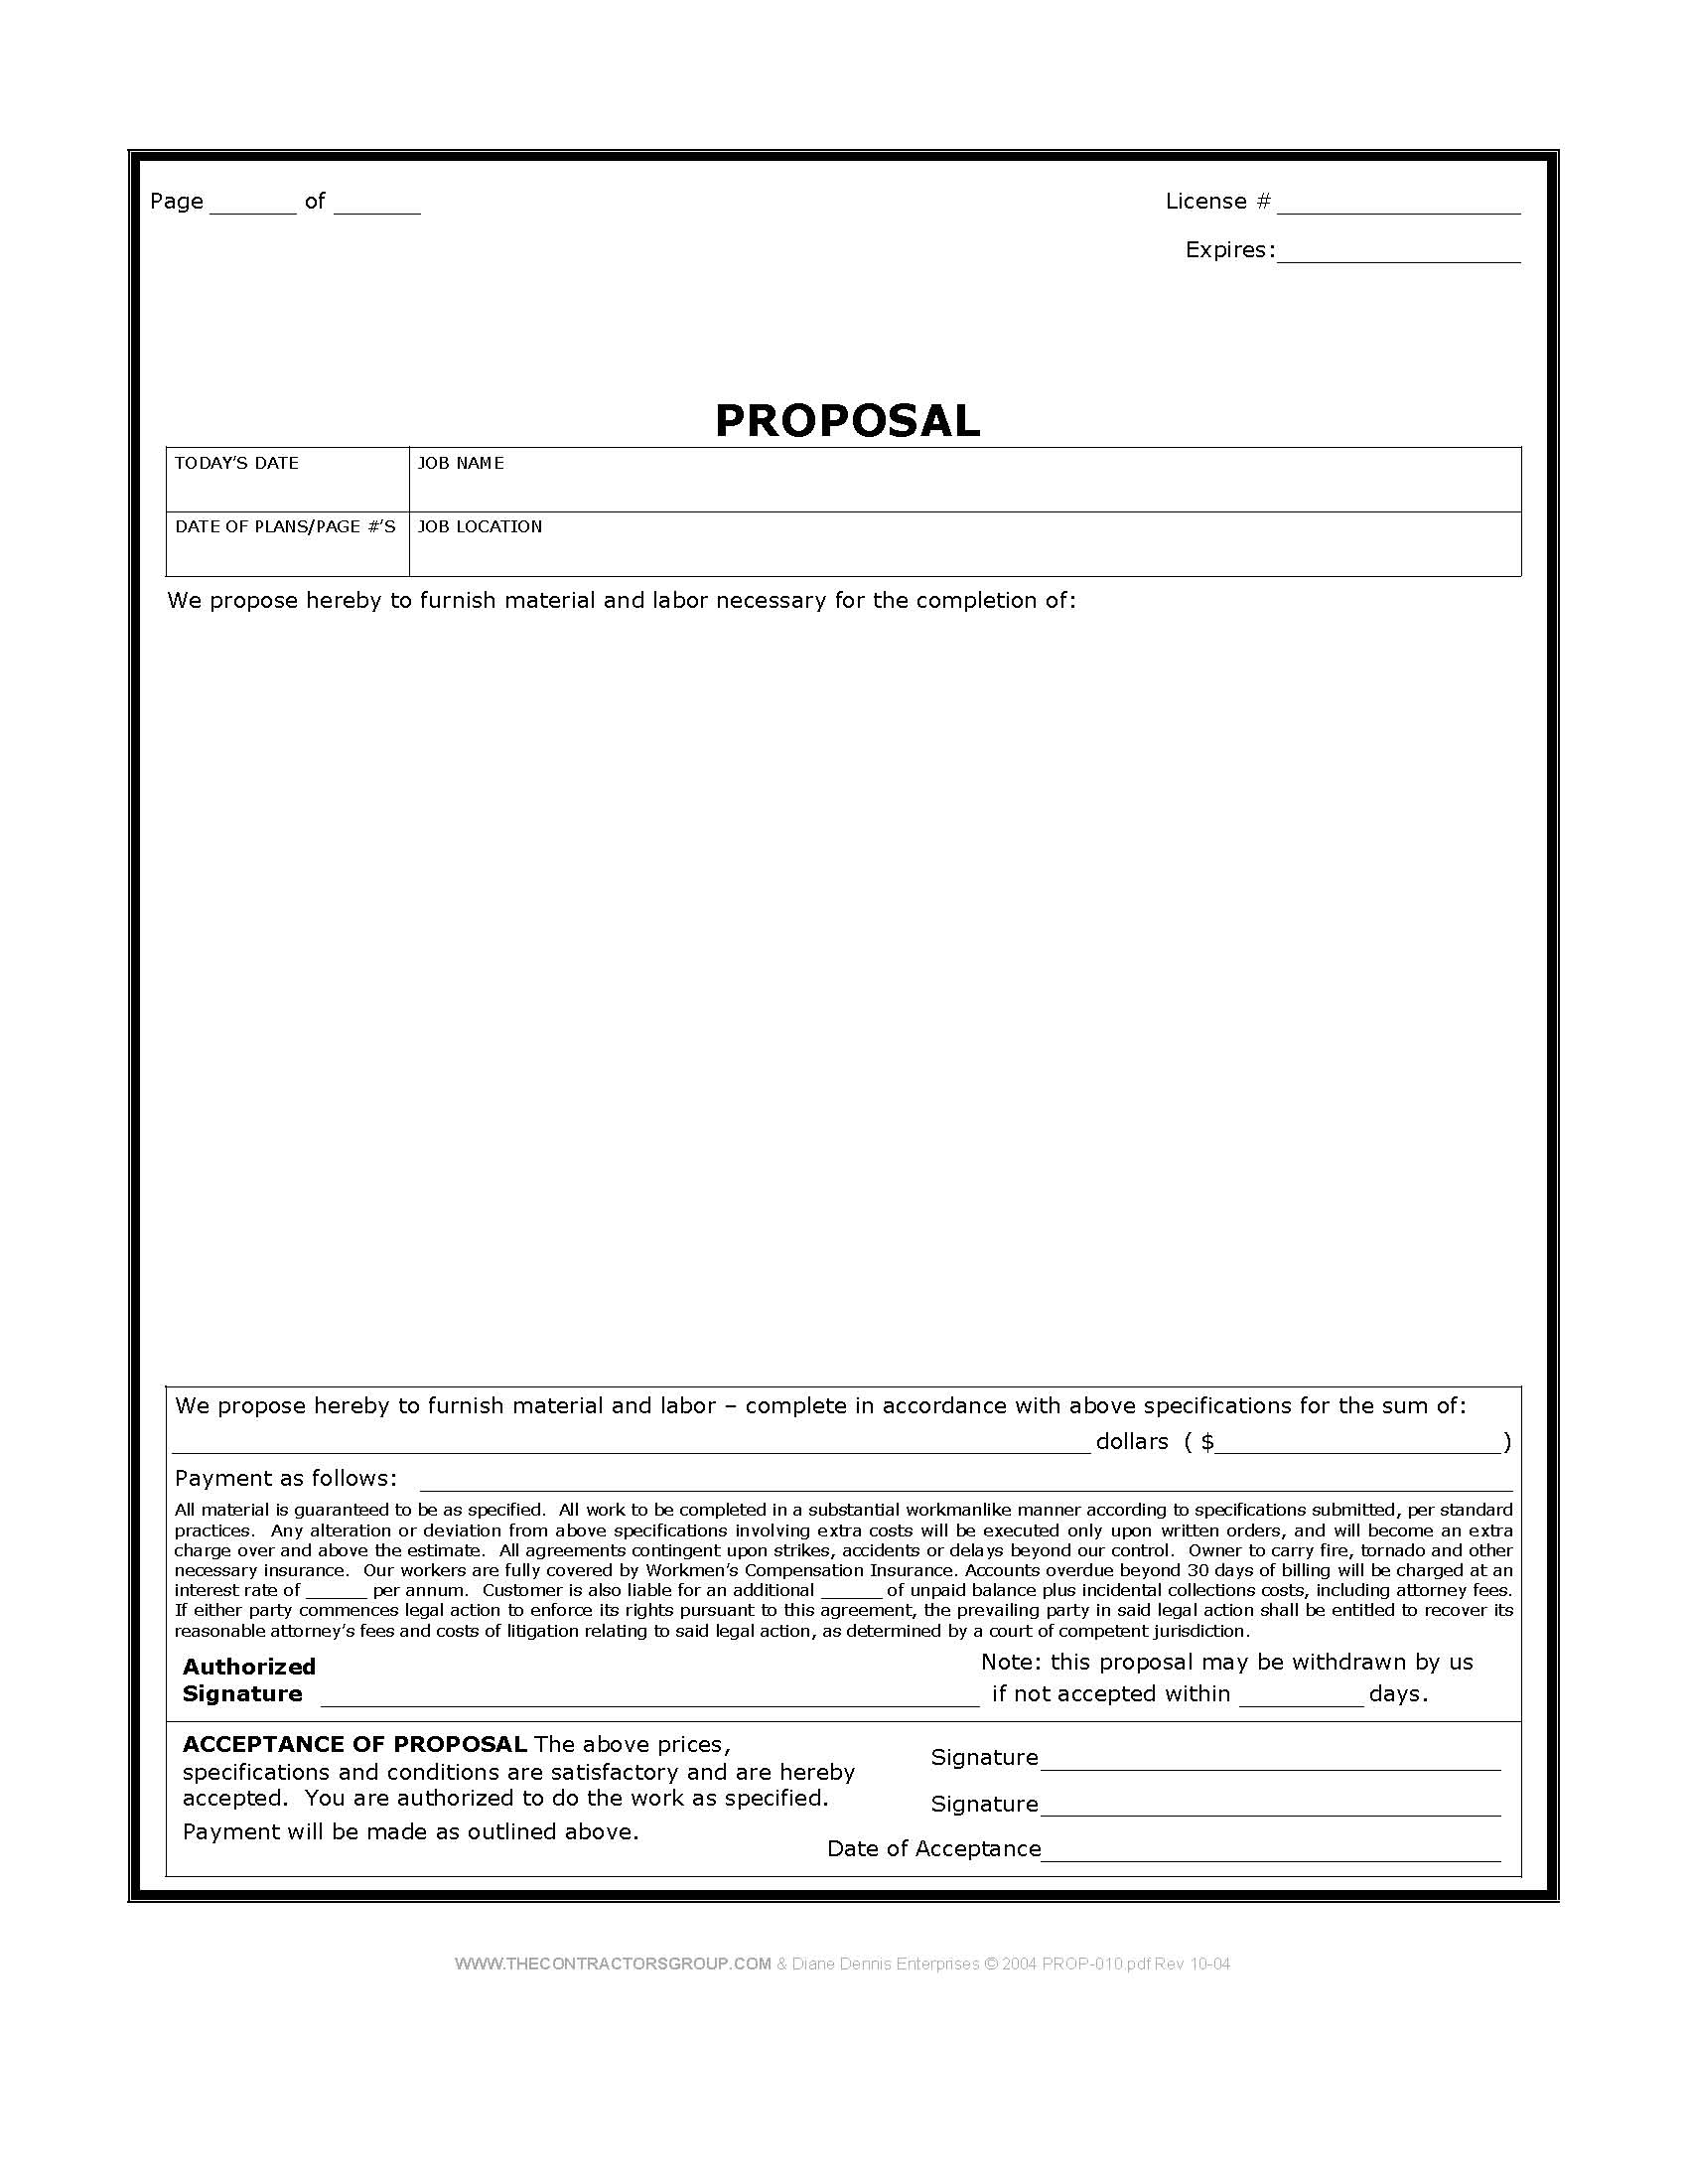 formal bid proposal template construction bid proposal templates formal bid proposal template videotekaalex tk